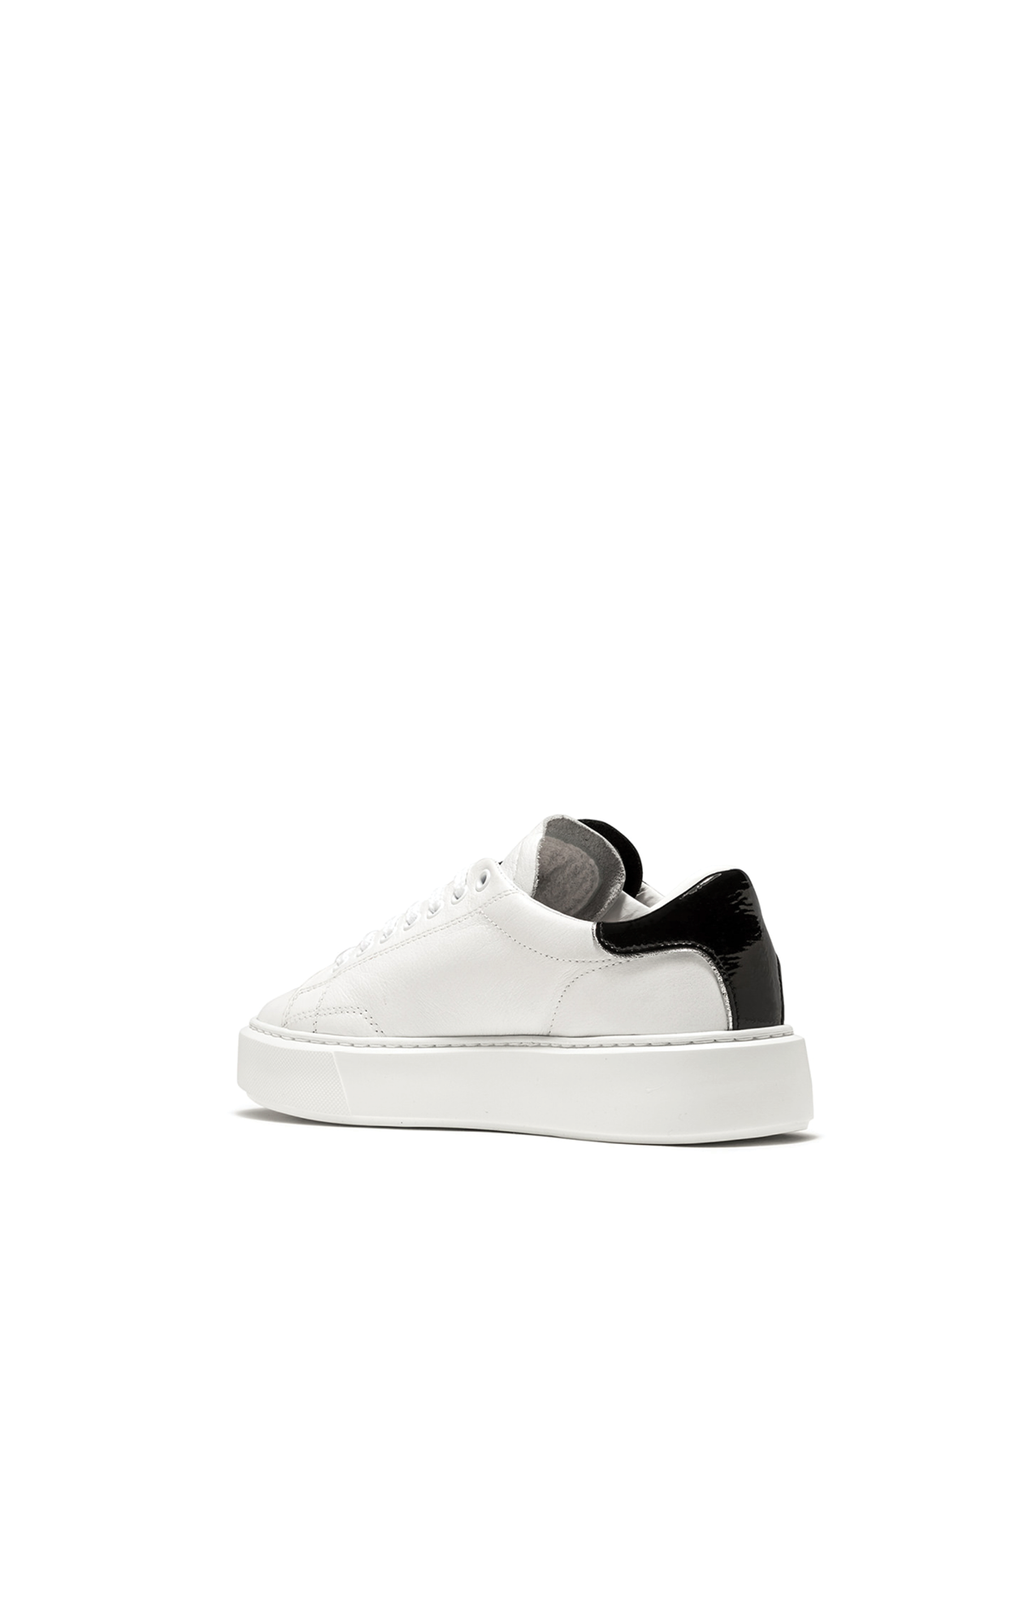 Sfera Calf Sneaker - White/Black